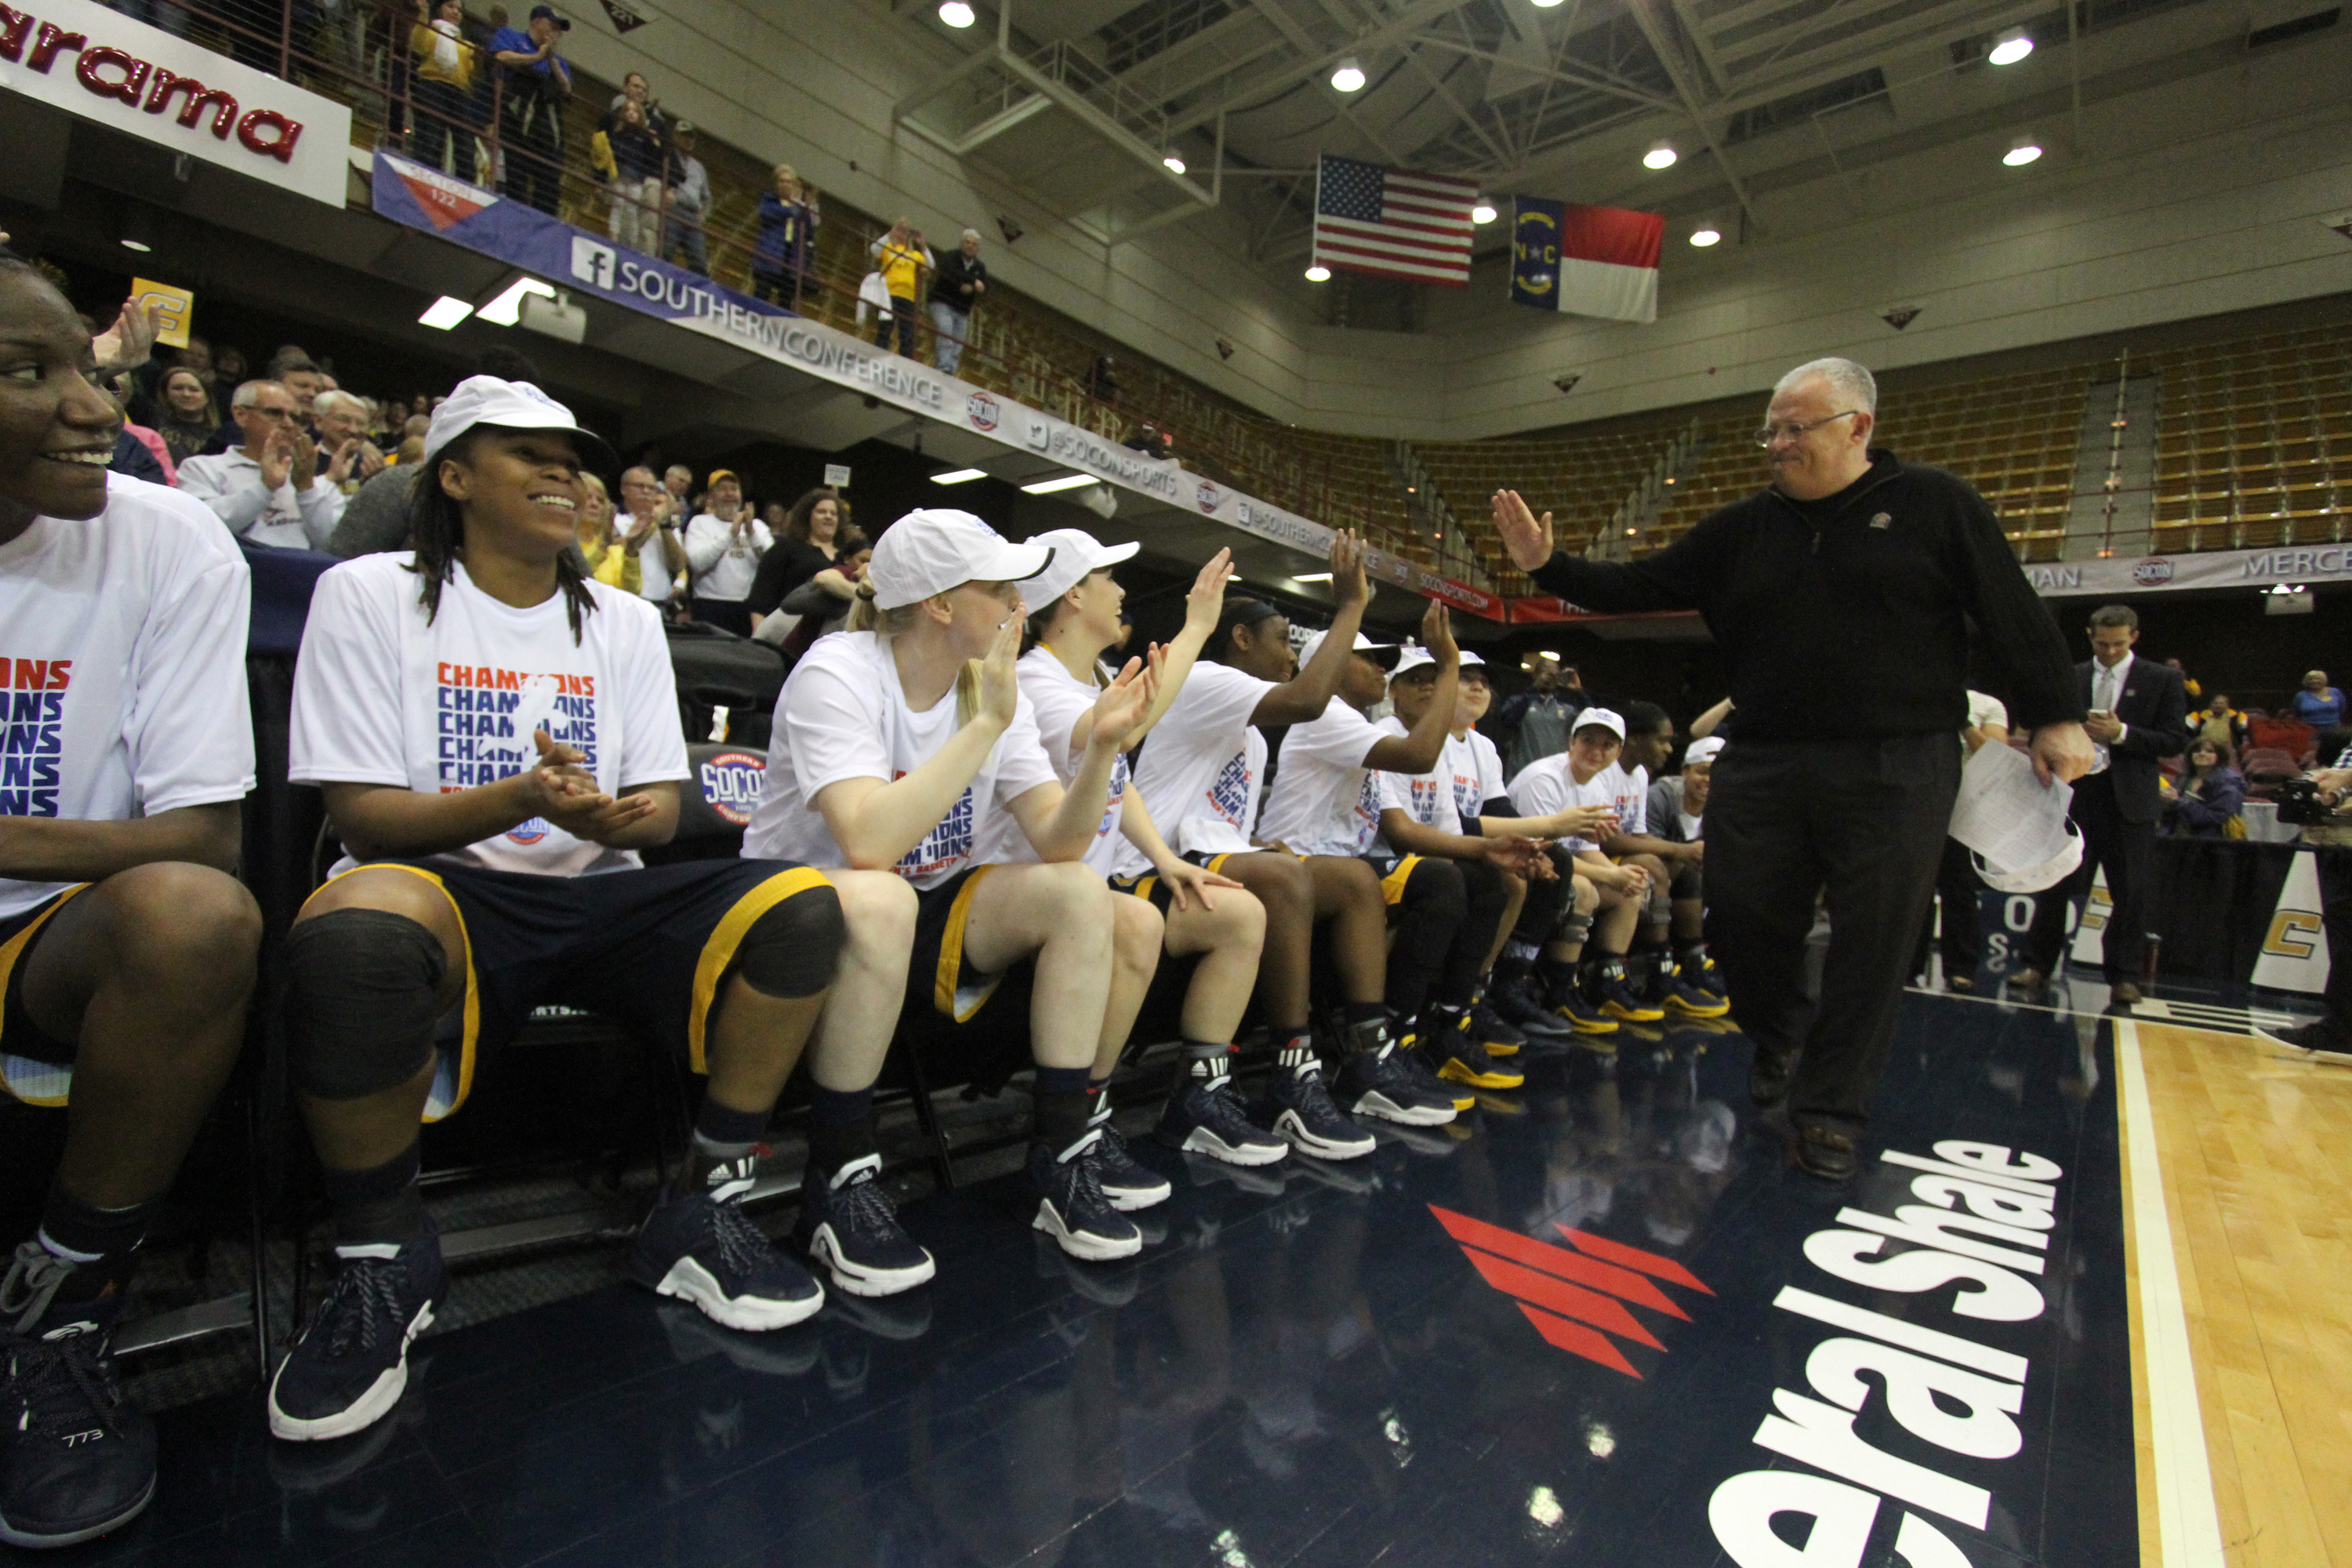 Chattanooga's women's basketball team celebrates after their 65-57 victory over Mercer in the championship game of the NCAA women's Southern Conference basketball tournament in Asheville, N.C., Sunday, March 6, 2016. (AP Photo/Ben Earp)